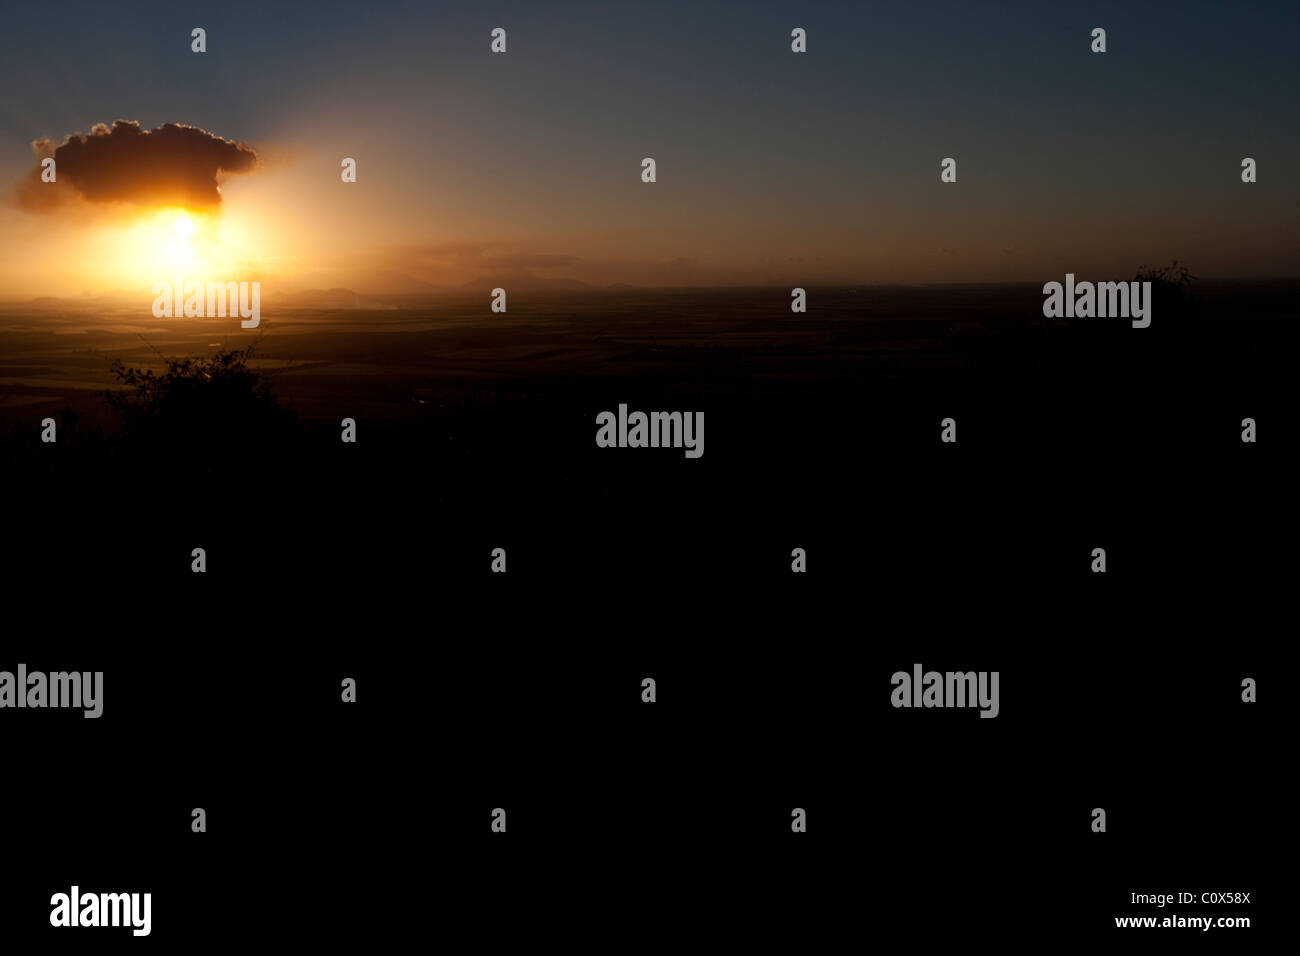 Sun bursting from cloud with rays of light. Symbolic of hope, renewal, energy. - Stock Image